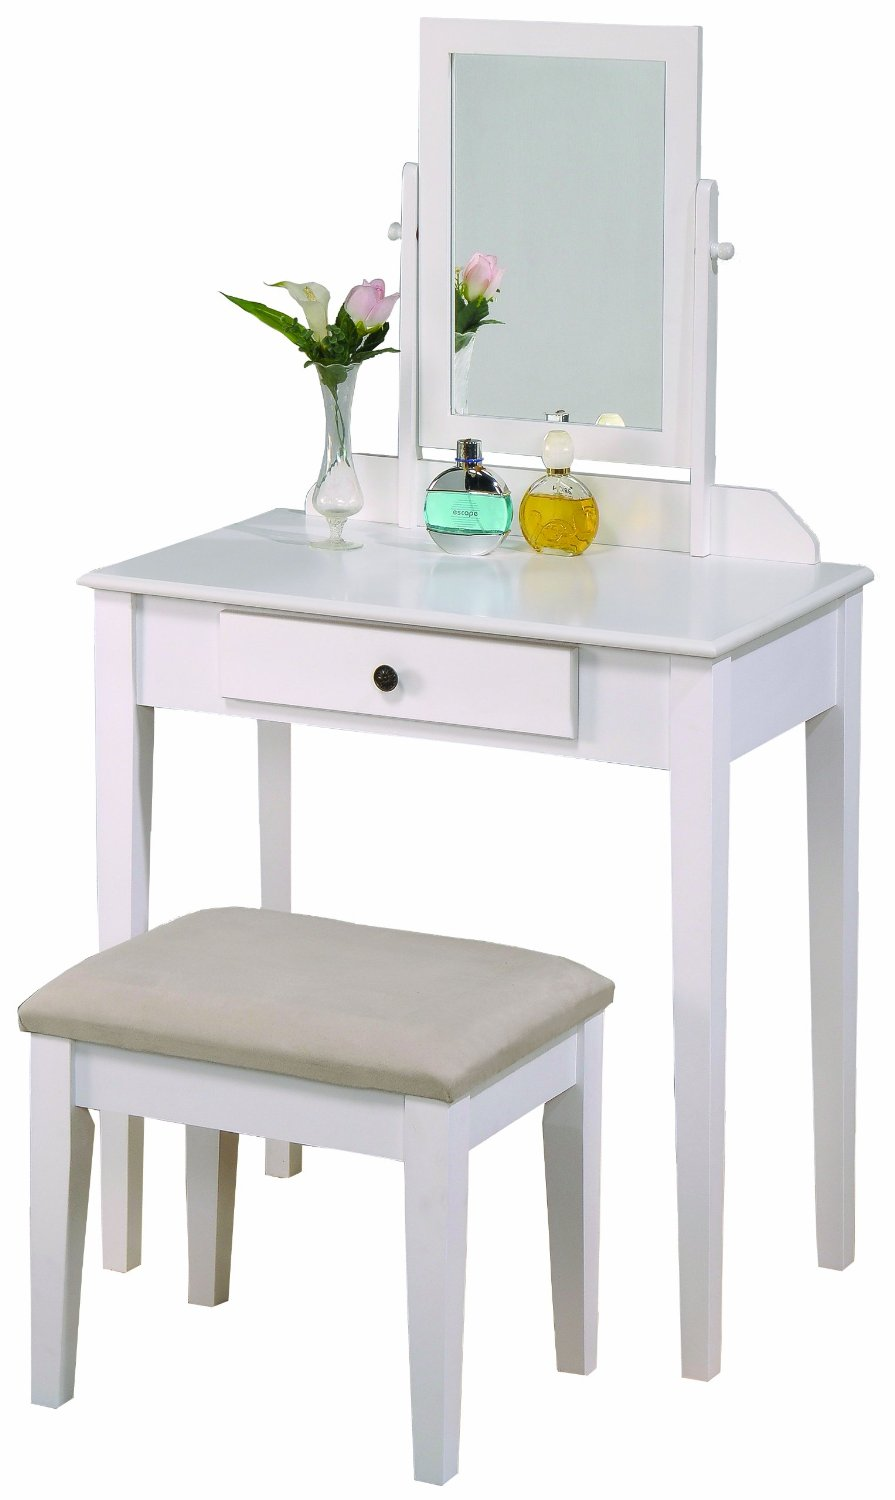 Top 5 vanity tables with mirror for under 100 vanity table with image courtesy of amazon posted in top 5 vanity tables with mirror geotapseo Choice Image